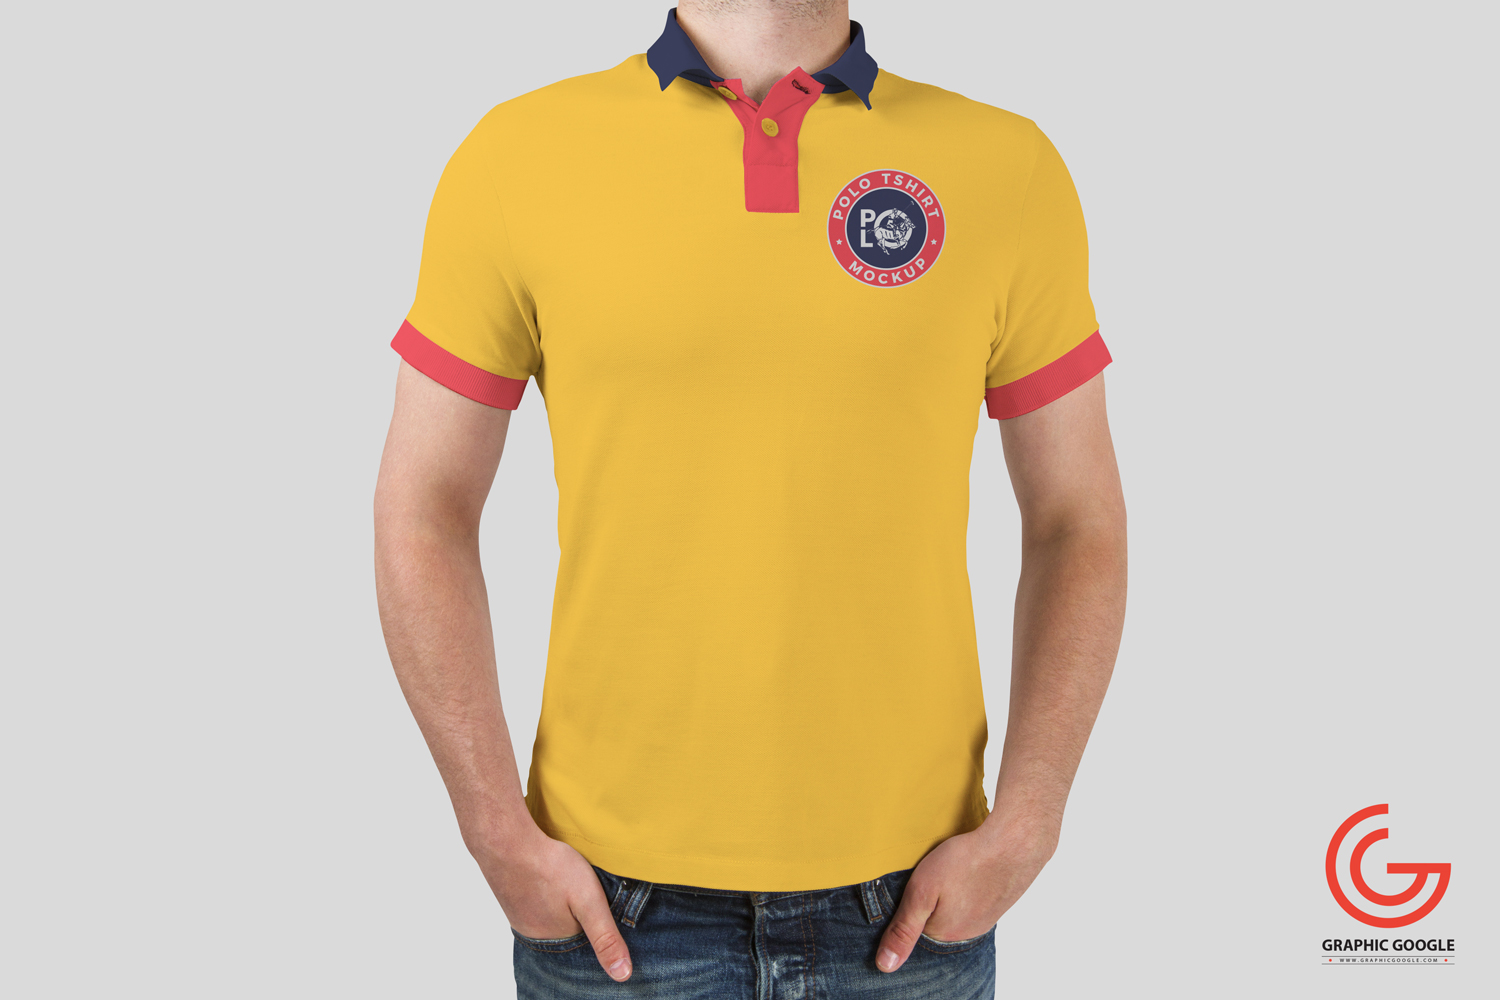 Free-Man-Wearing-Polo-TShirt-Mockup